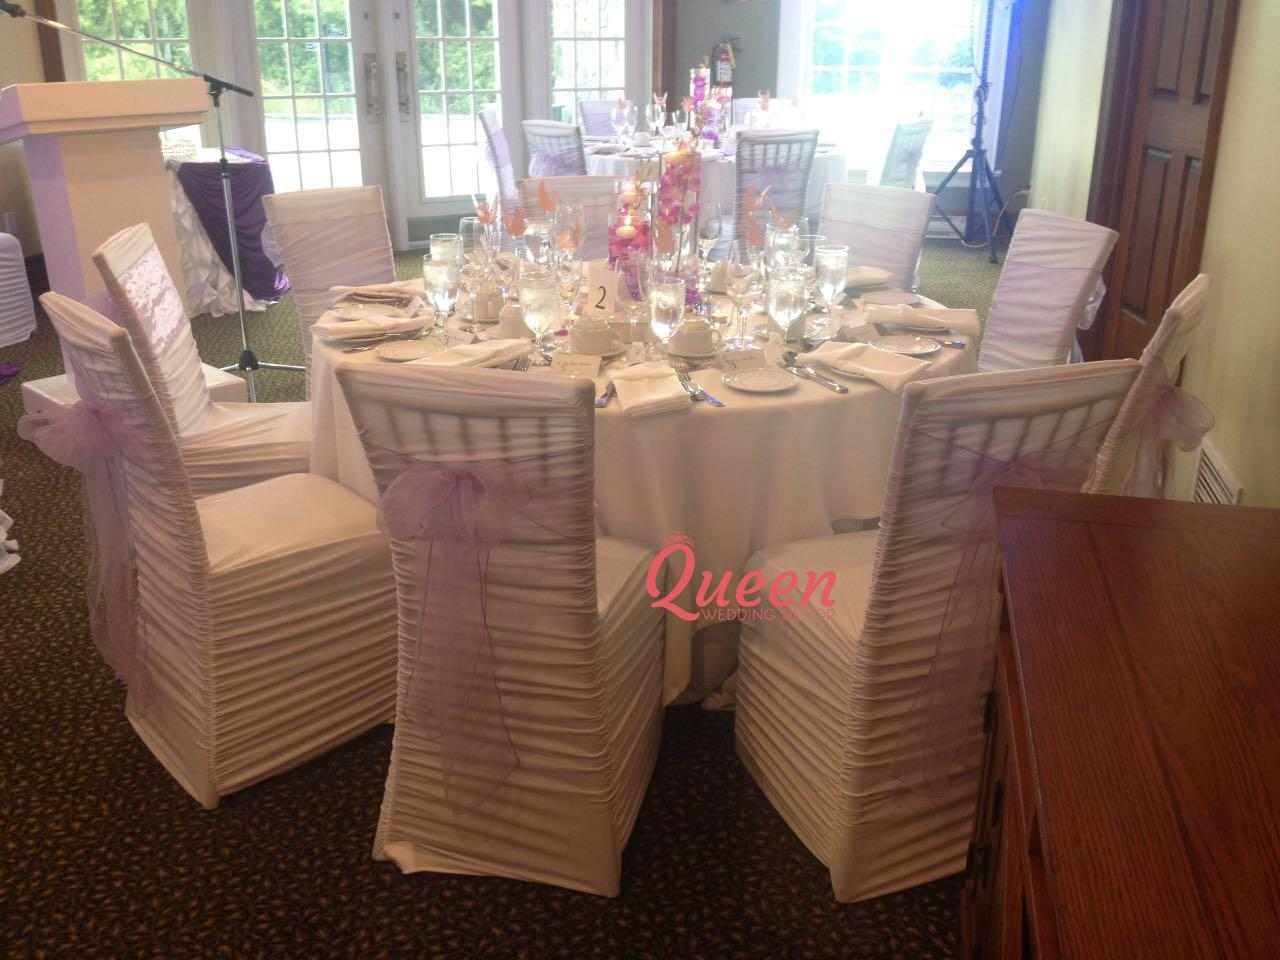 wedding chair cover hire scarborough replacement casters for office chairs angus glen golf club queen decor